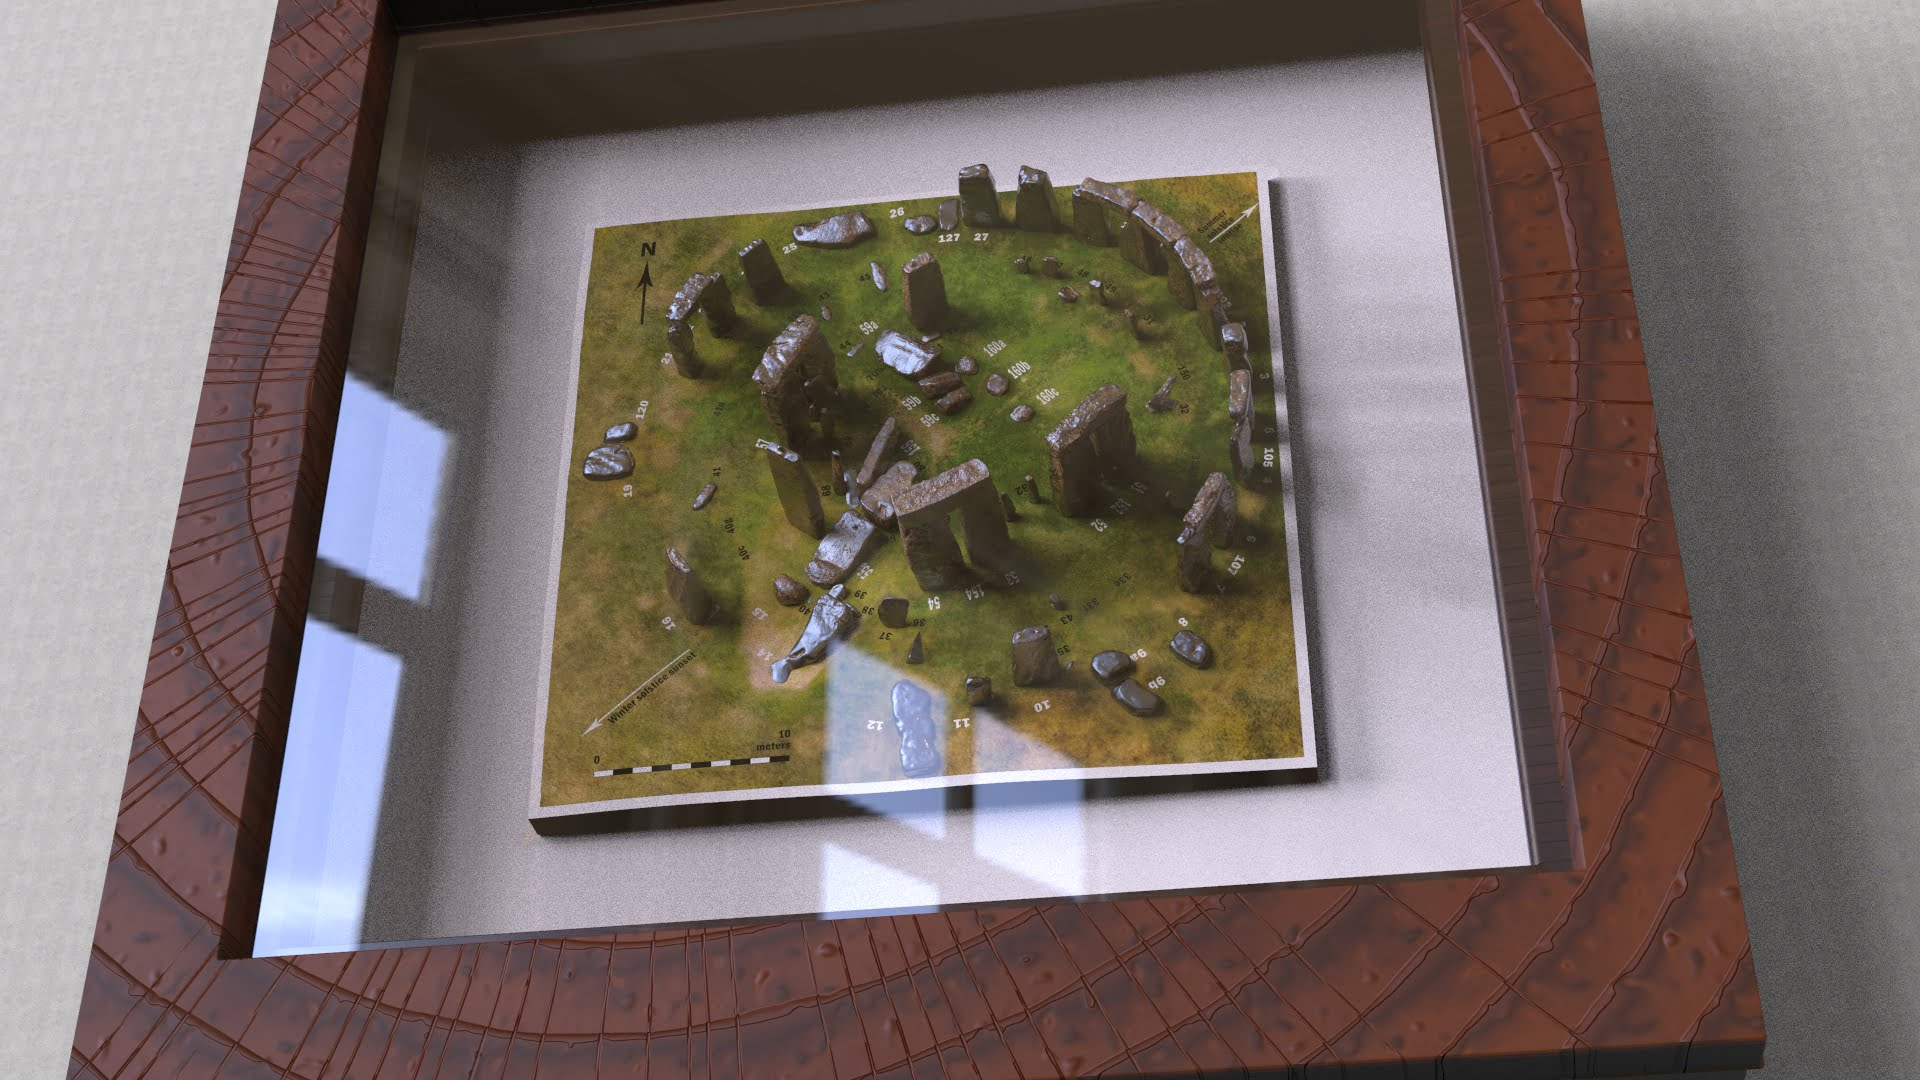 Buy Stonehenge Models: Rusted iron on grass Stonehenge model replica framed mounted and glazed 001  - 200th scale pick n mix -